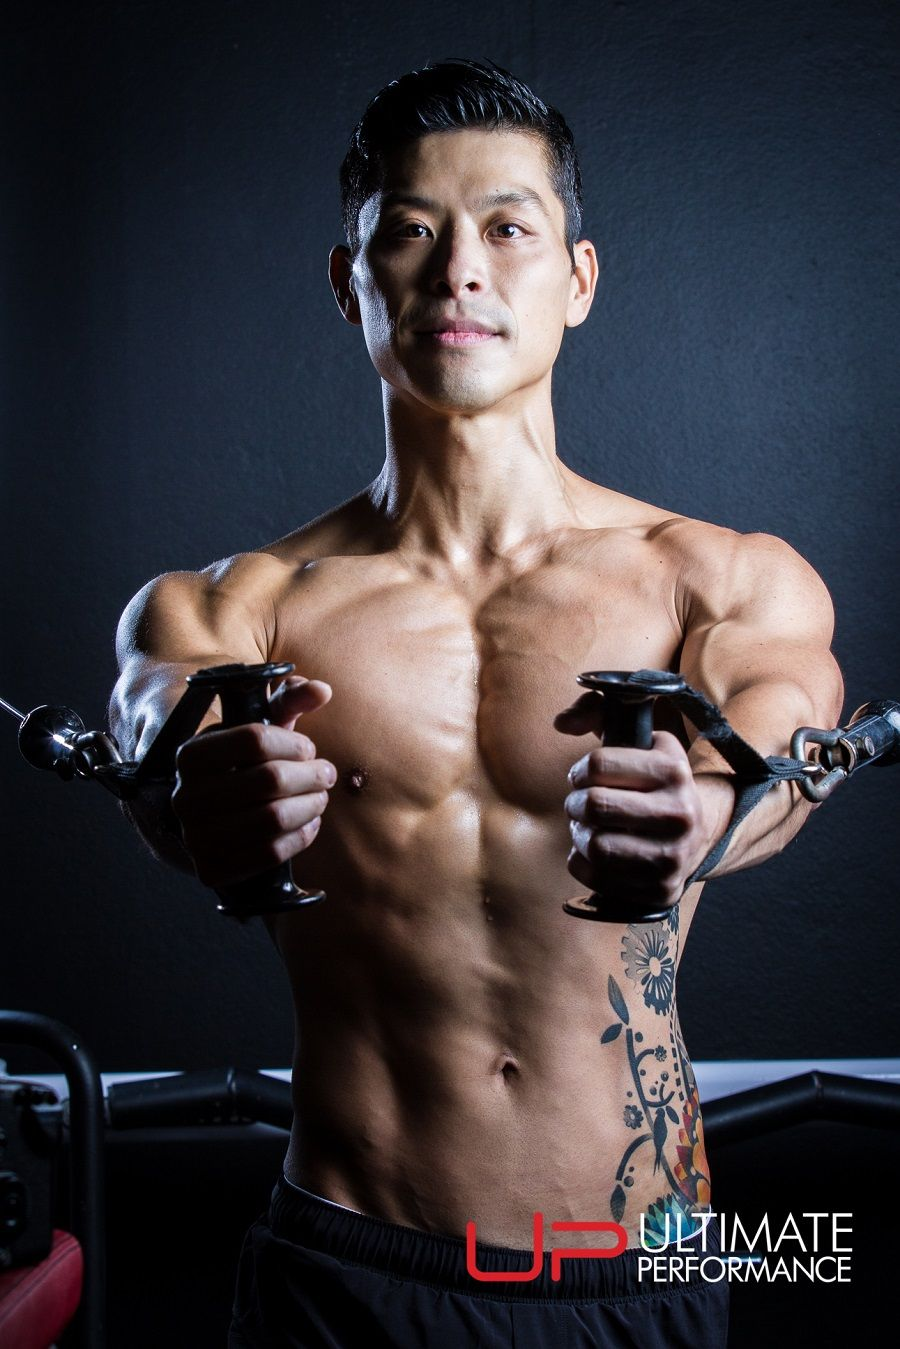 TIM Chinese man with muscle with cable flies